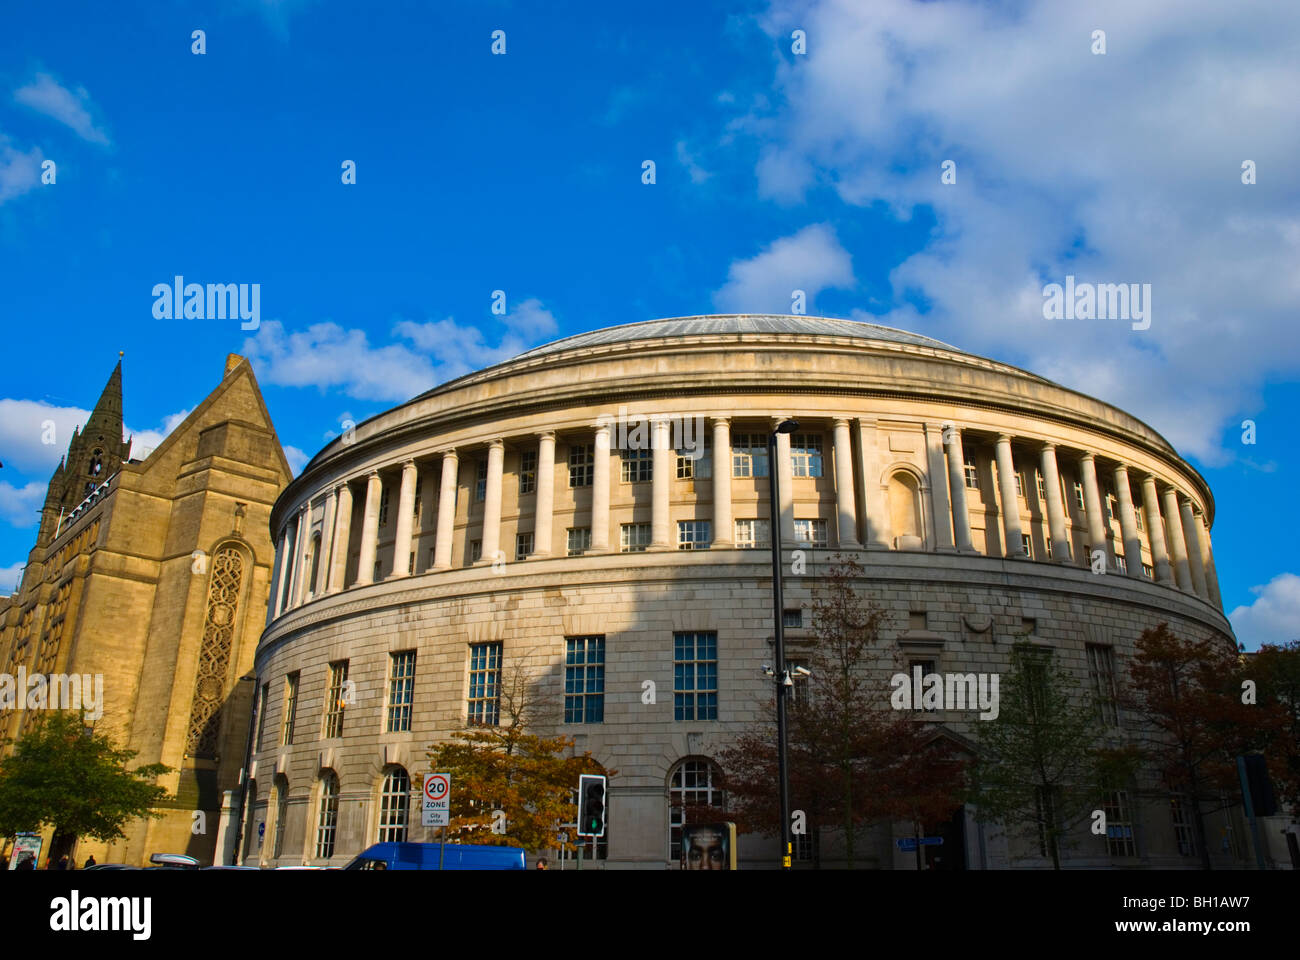 Central Library St Peters Square central Manchester England UK Europe - Stock Image